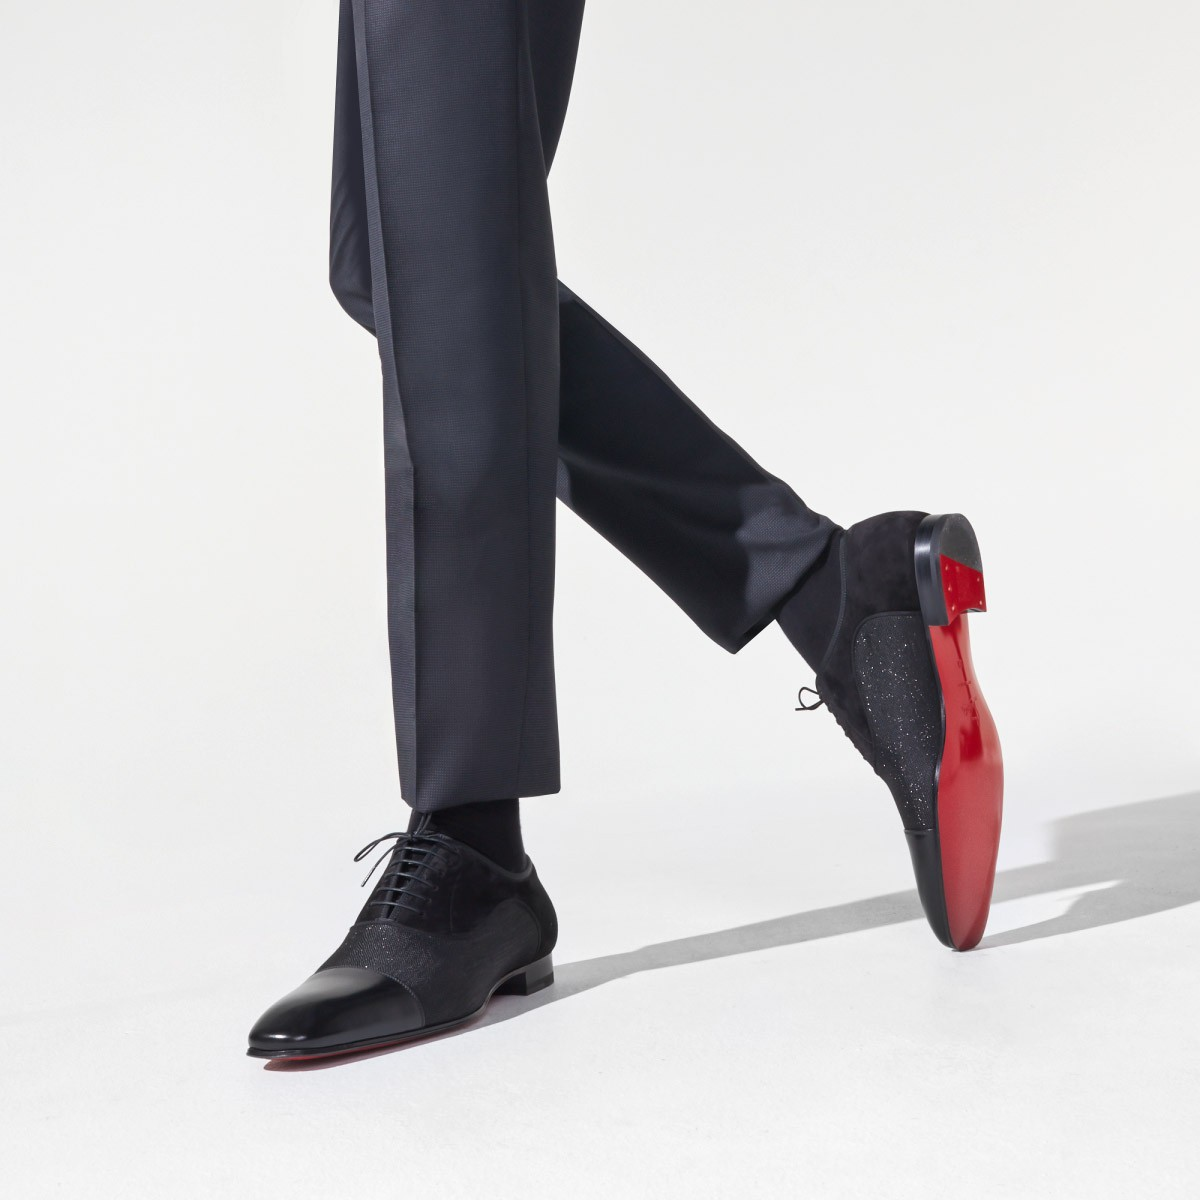 Shoes - Greggo Flat - Christian Louboutin